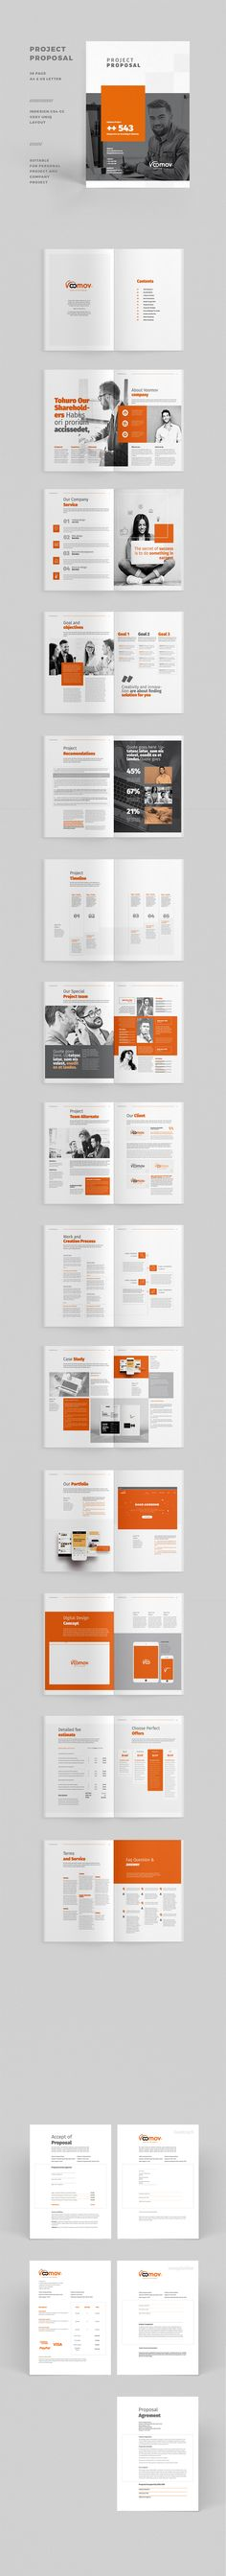 Proposal Proposals, Proposal templates and Company profile - it services proposal template